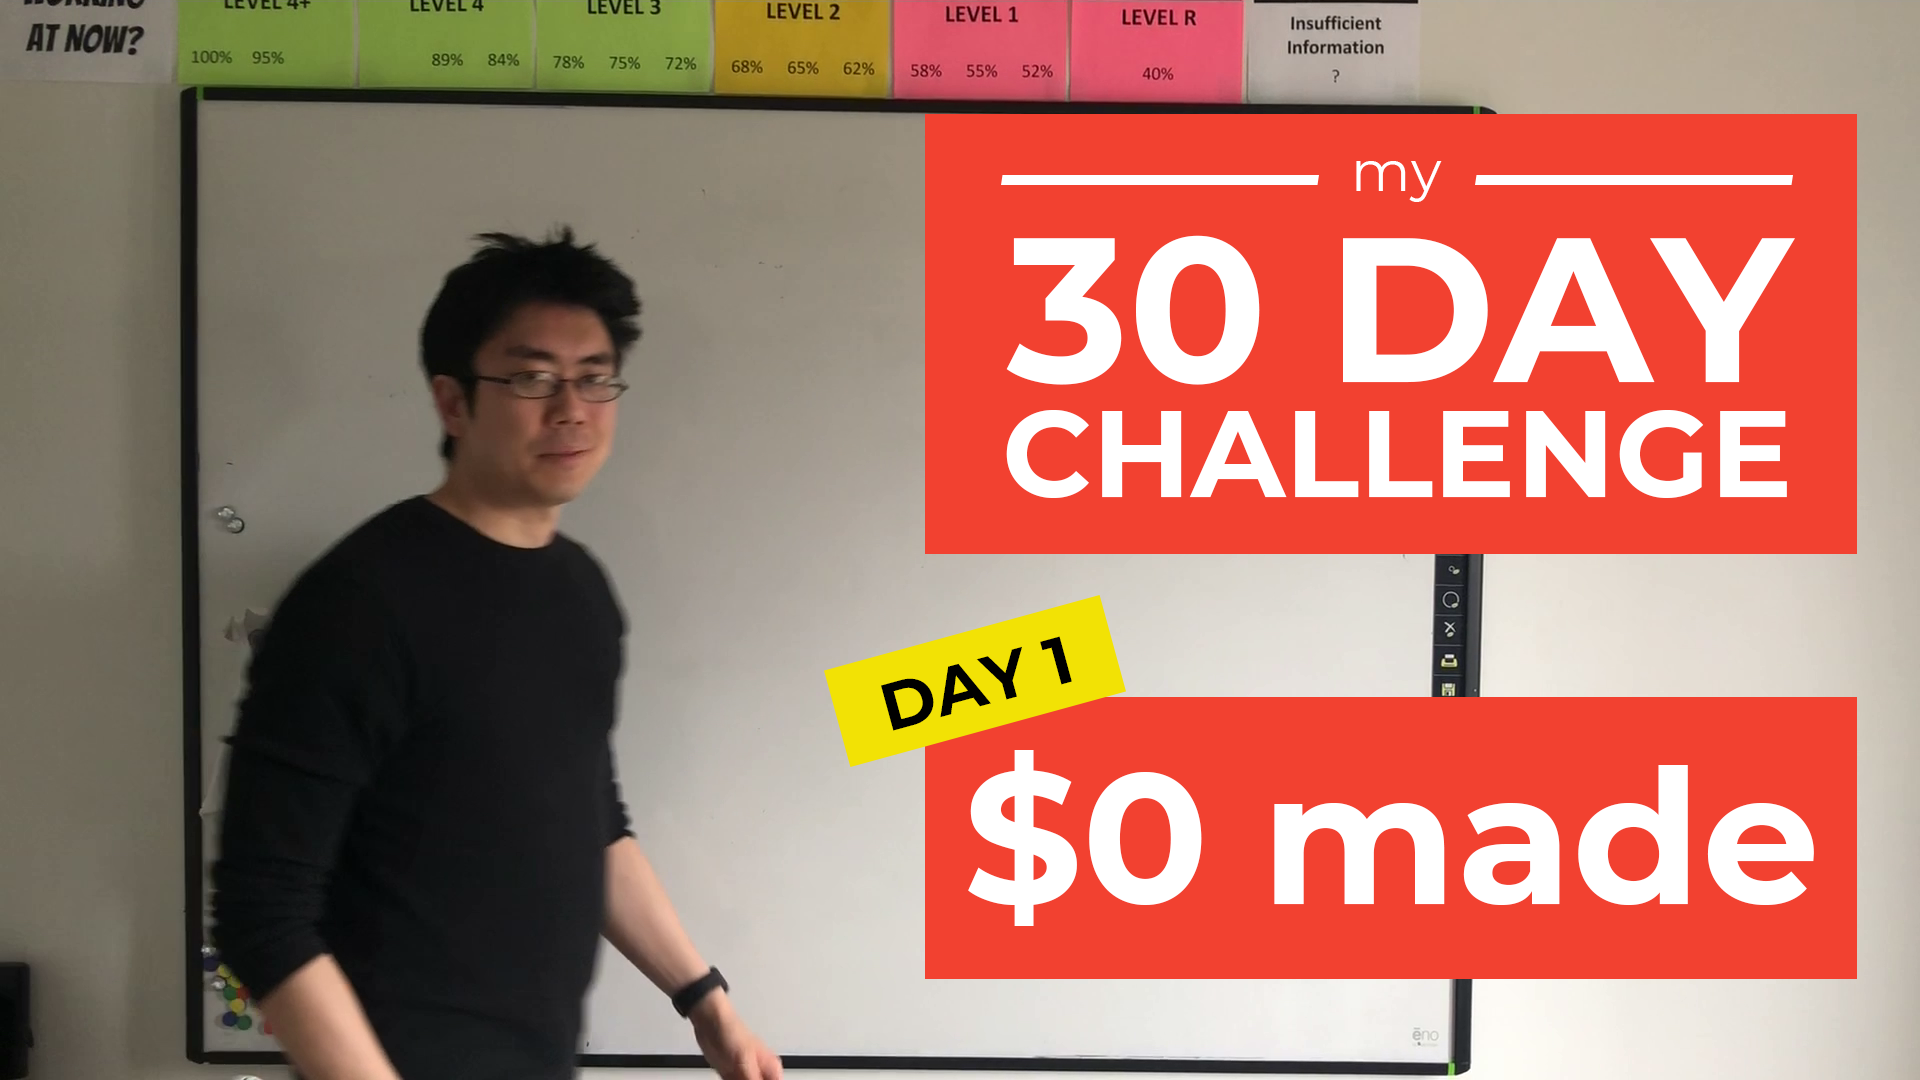 30 Day Challenge to Make Money Online - Day 1: $0 made. Find a friend